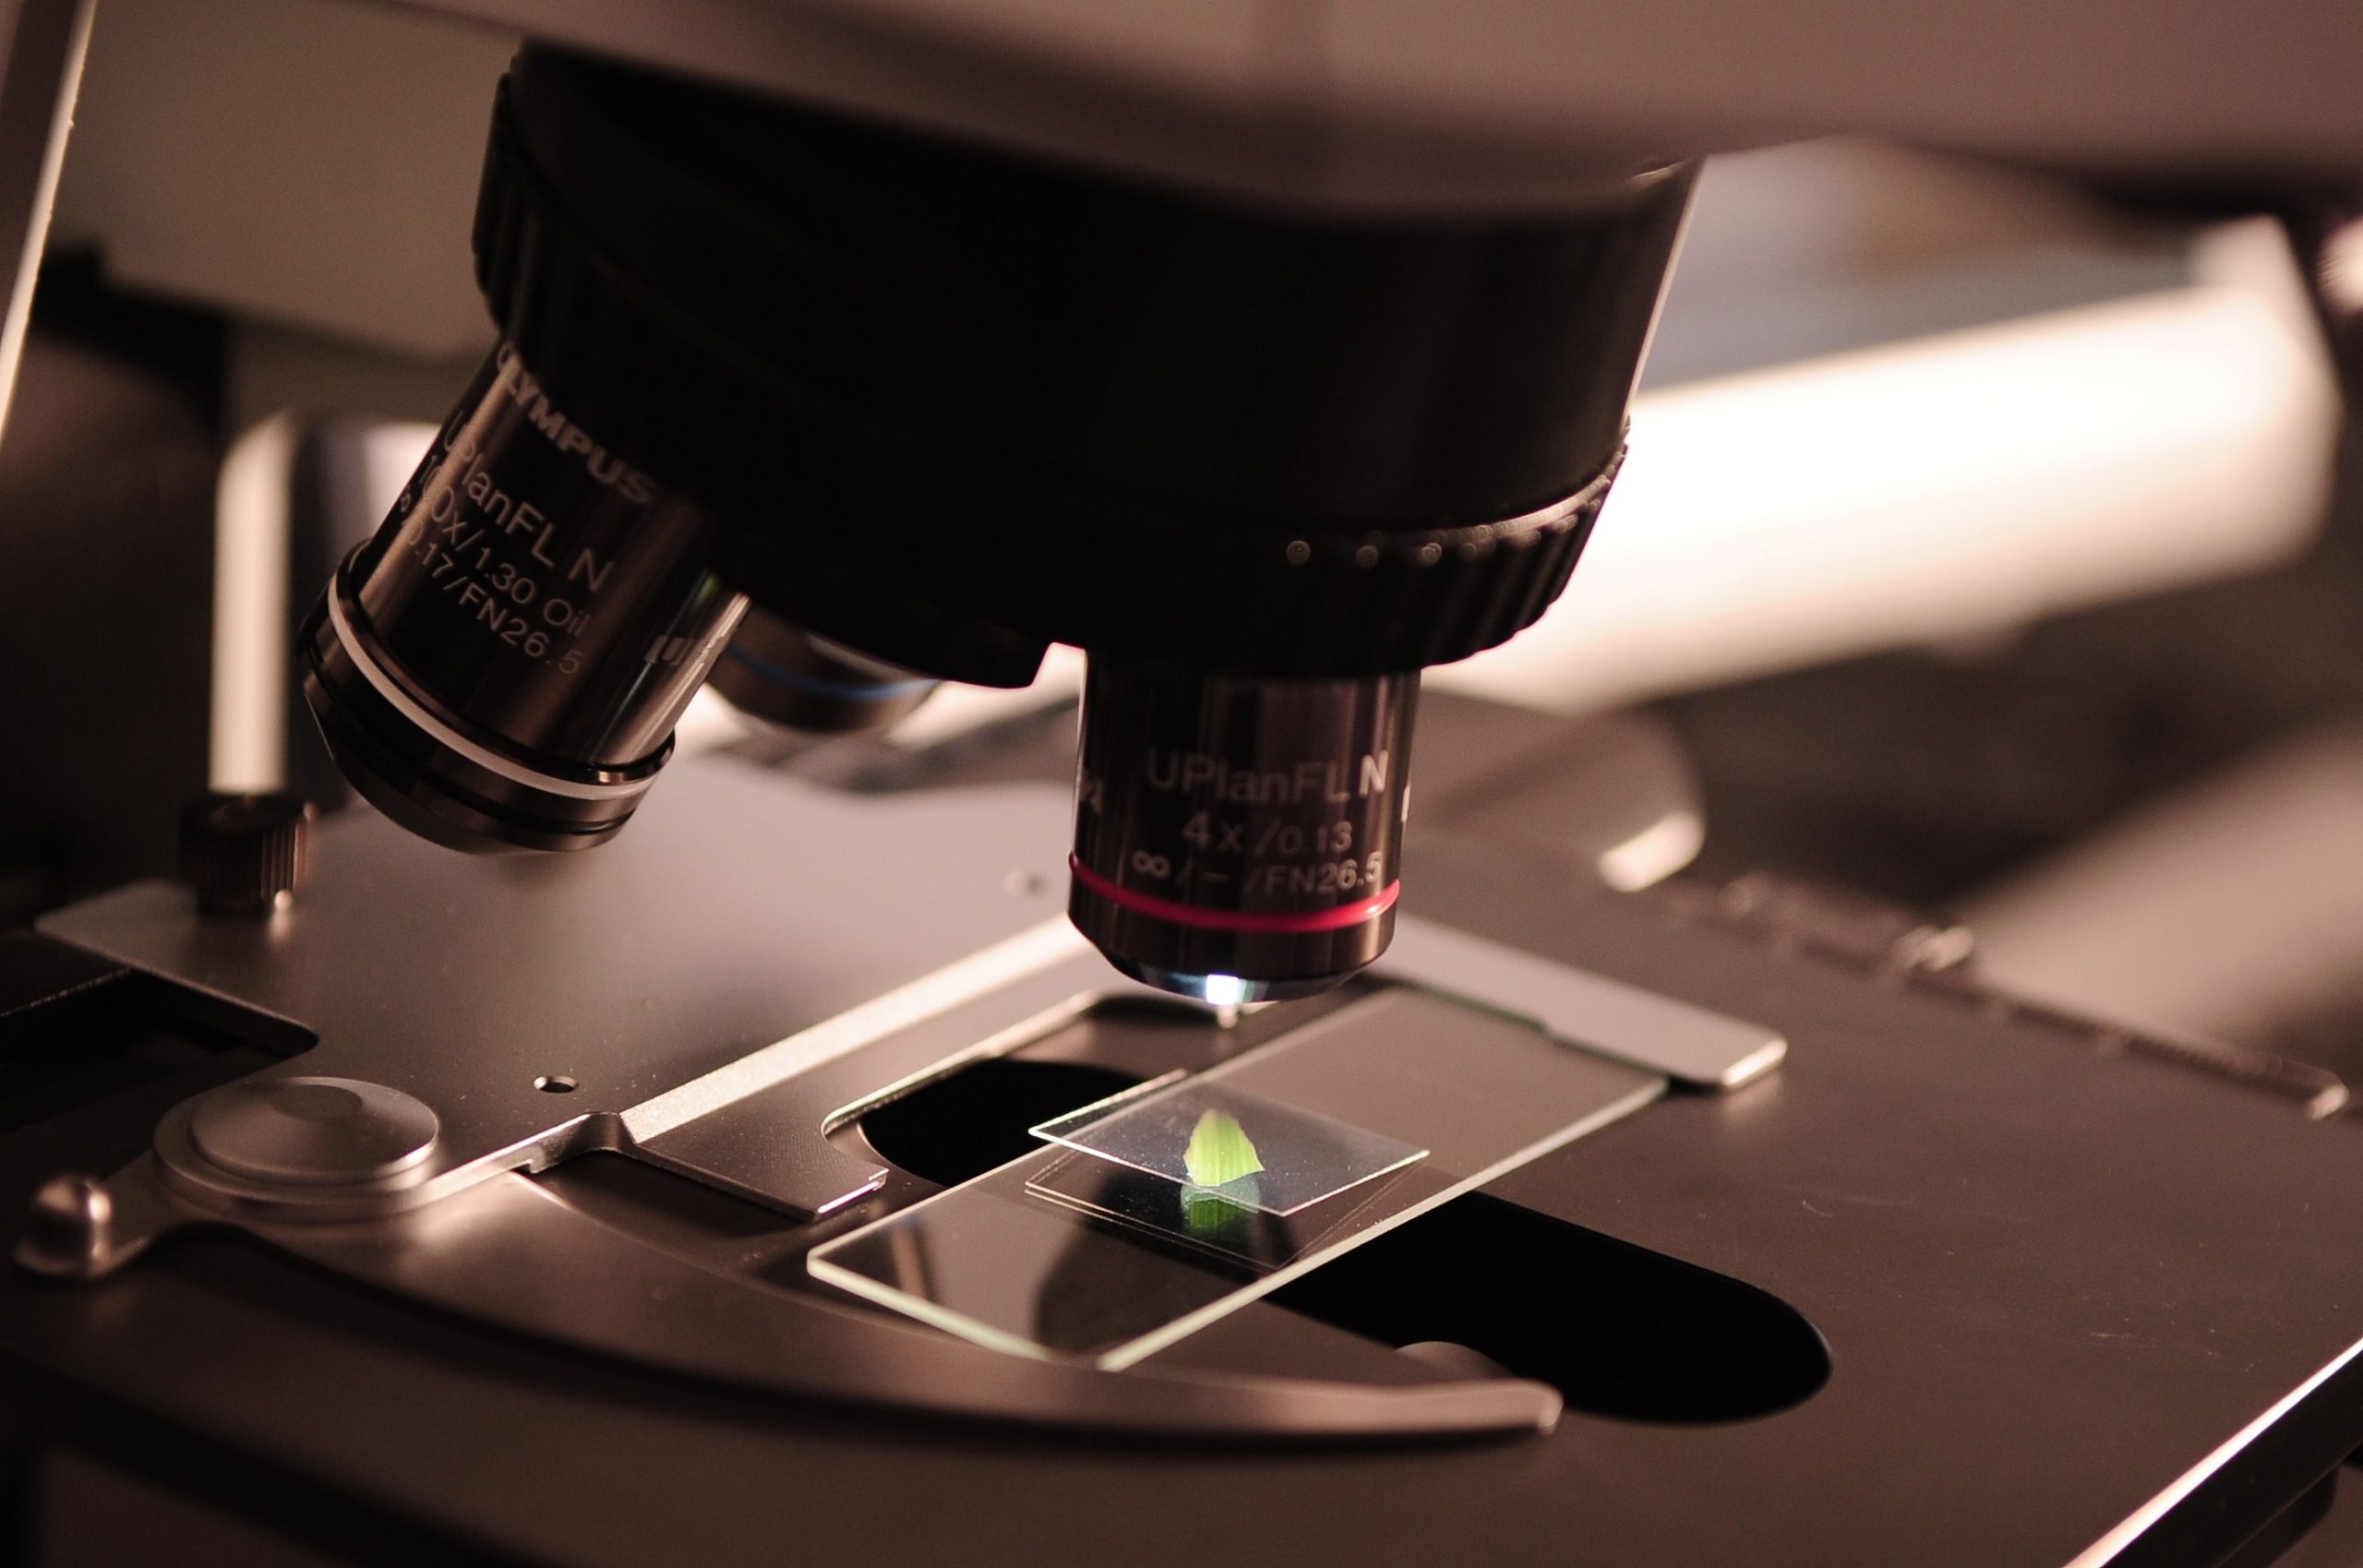 Gilead Sciences Research Scholars Cystic Fibrosis Program Open to Applications